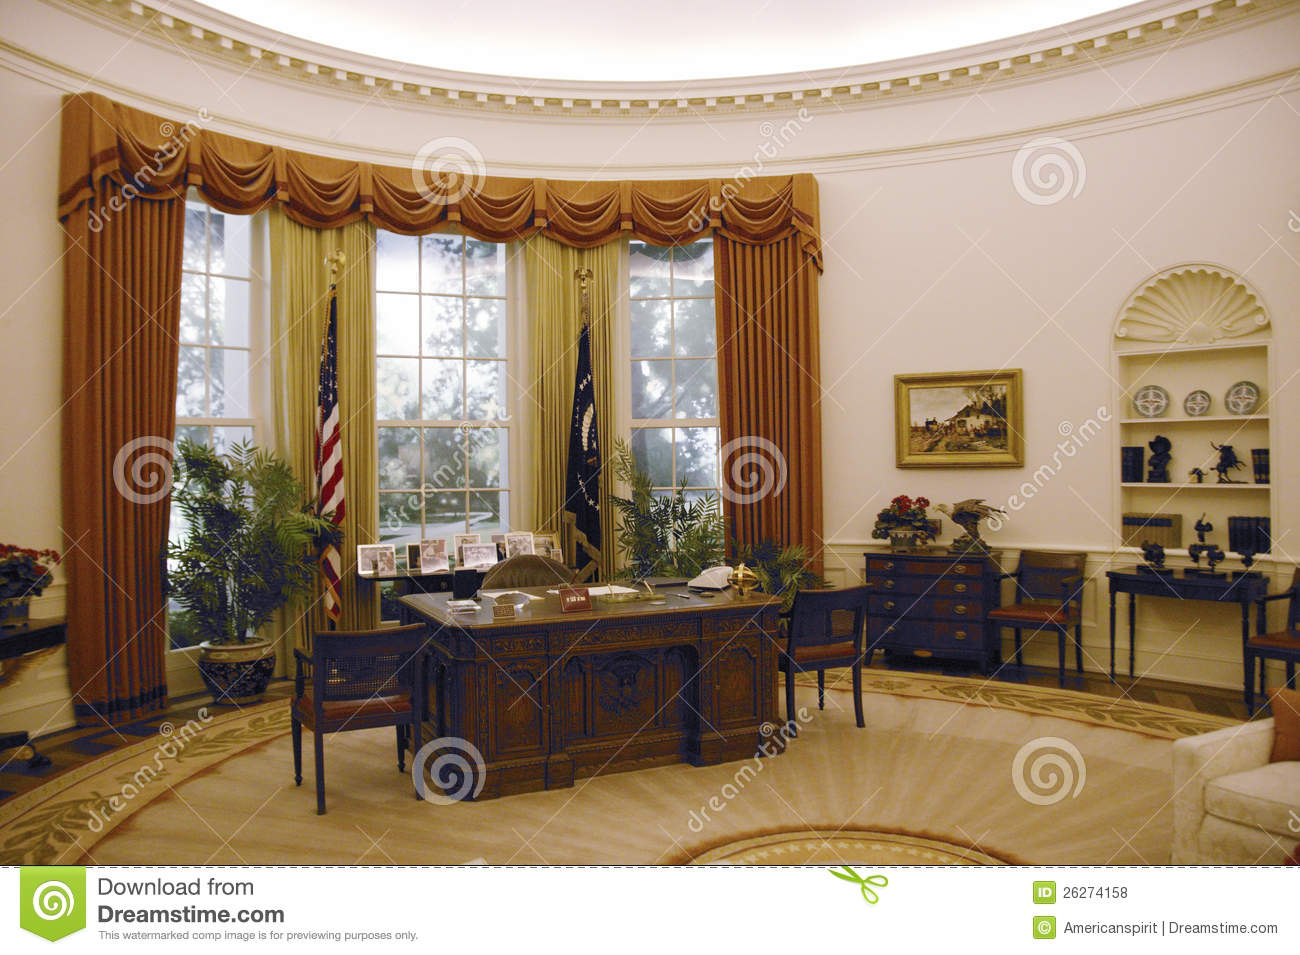 Obama Resolute Desk Replica Of The White House Oval Office Editorial Stock